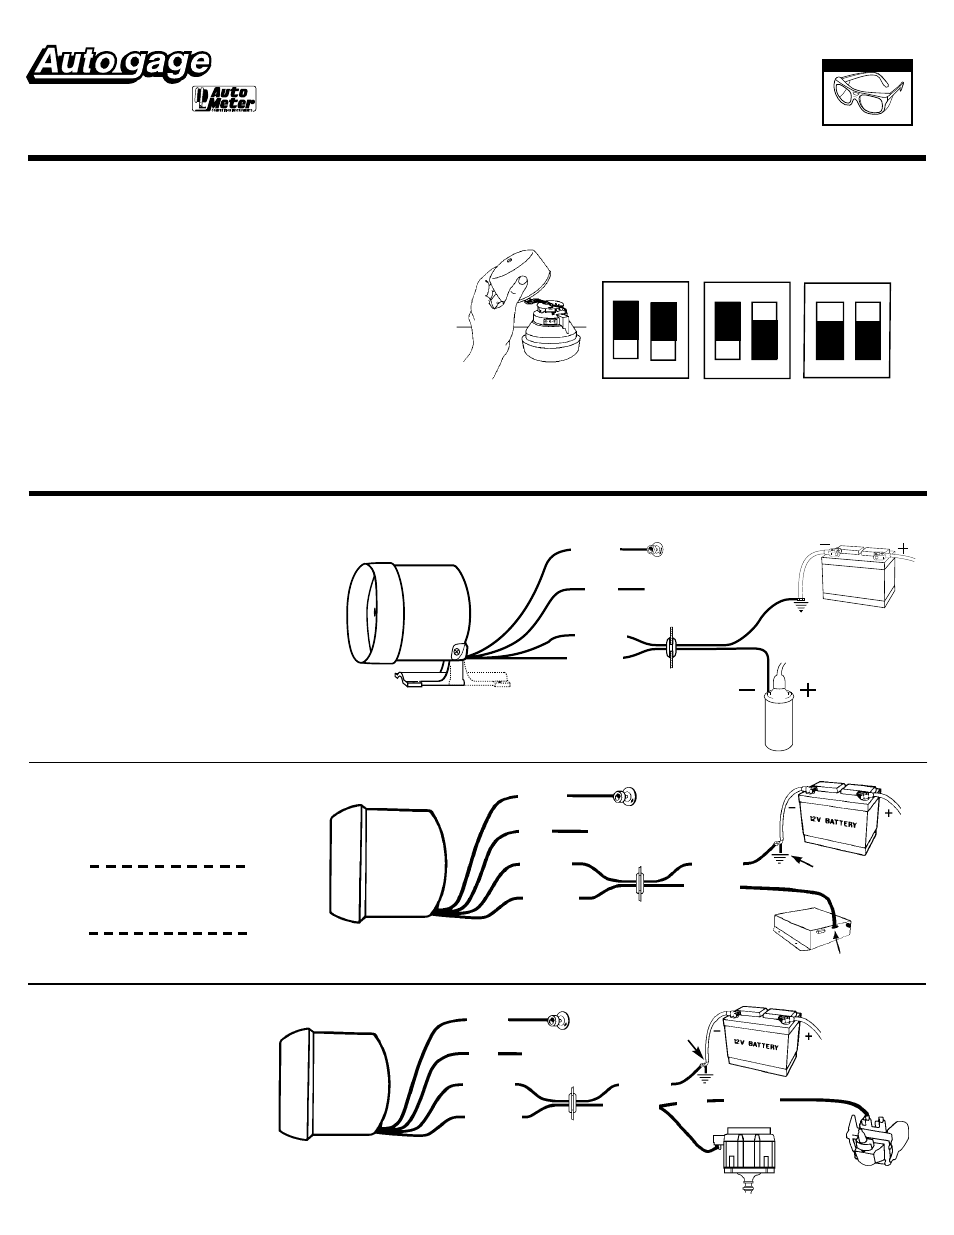 scosche gm2000 wiring diagram wiring diagram and hernes scosche wiring diagram automotive diagrams